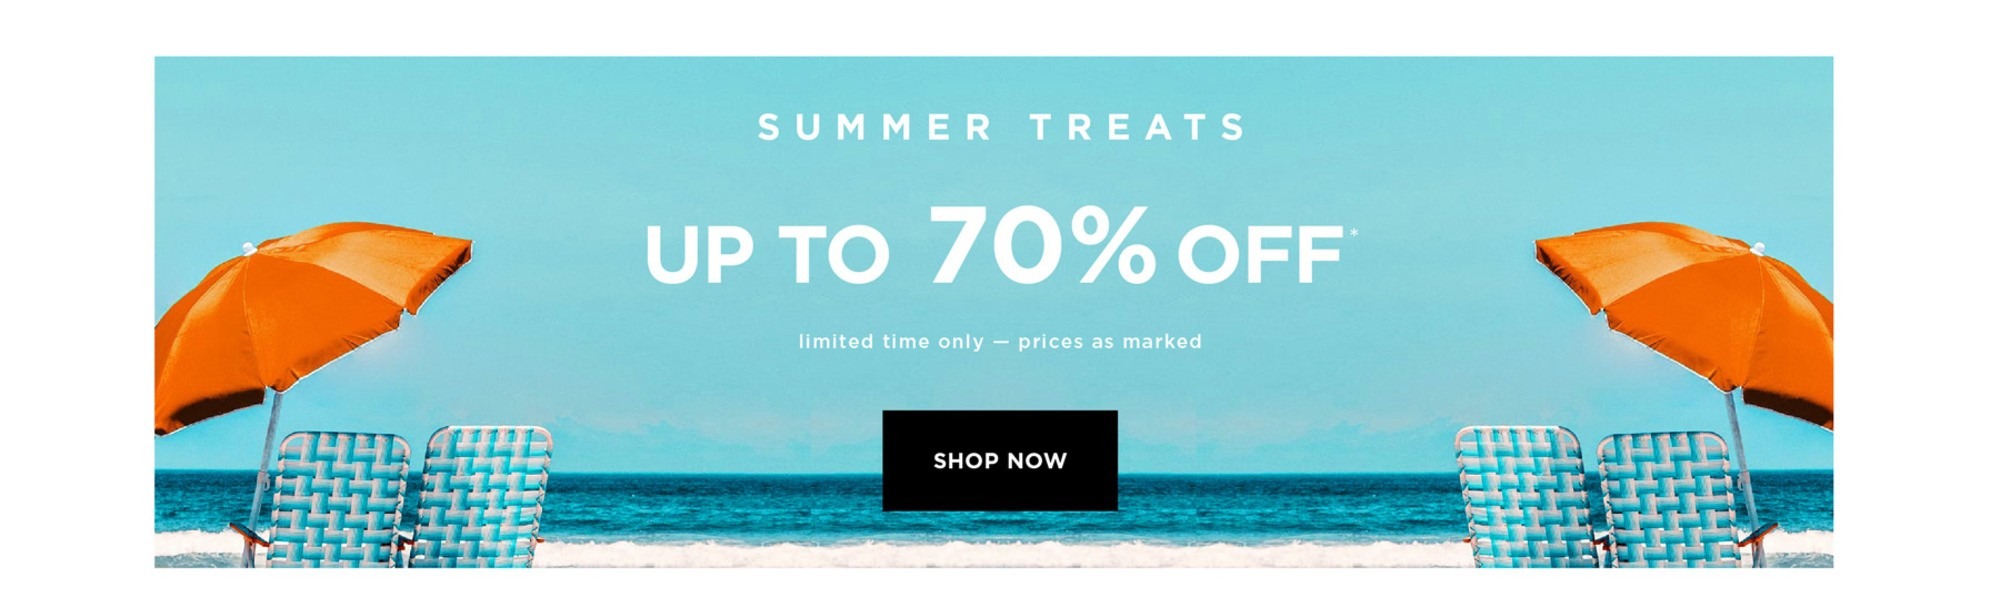 Summer Sale: Up To 70% Off* - Limited Time Only - Prices As Marked - Shop Now